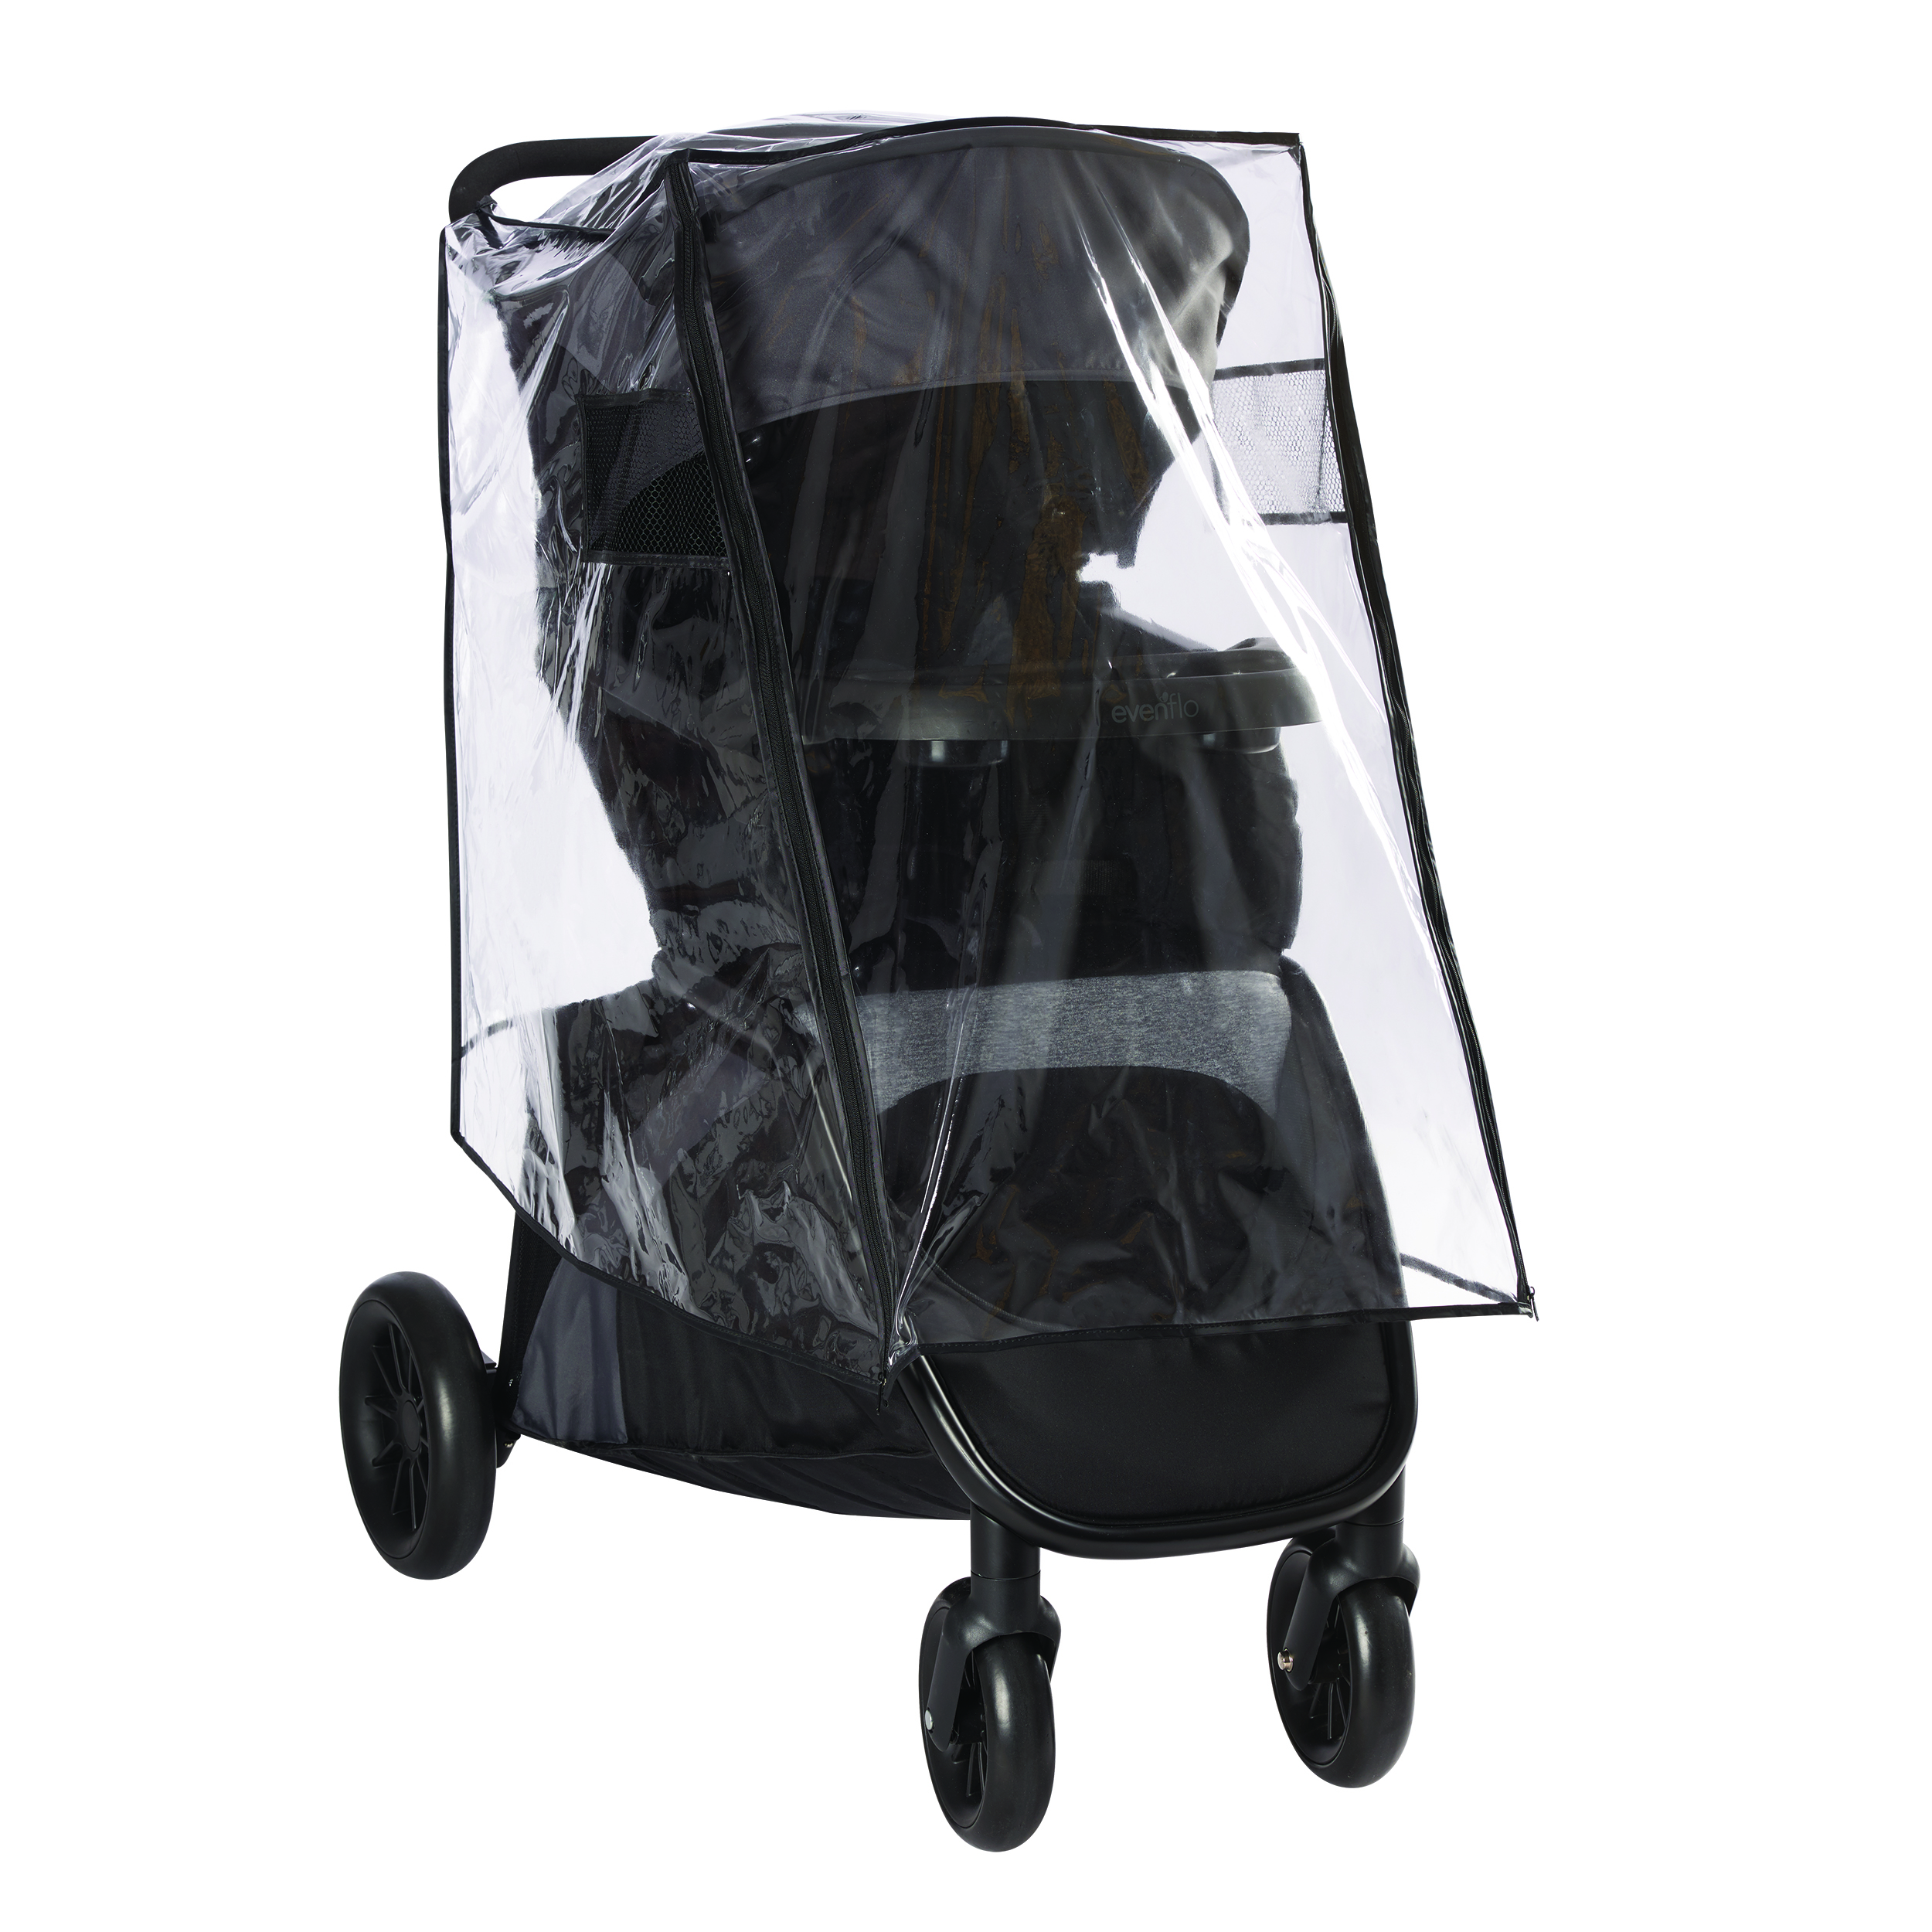 Evenflo Stroller Clear Weather Shield Cover Accessory